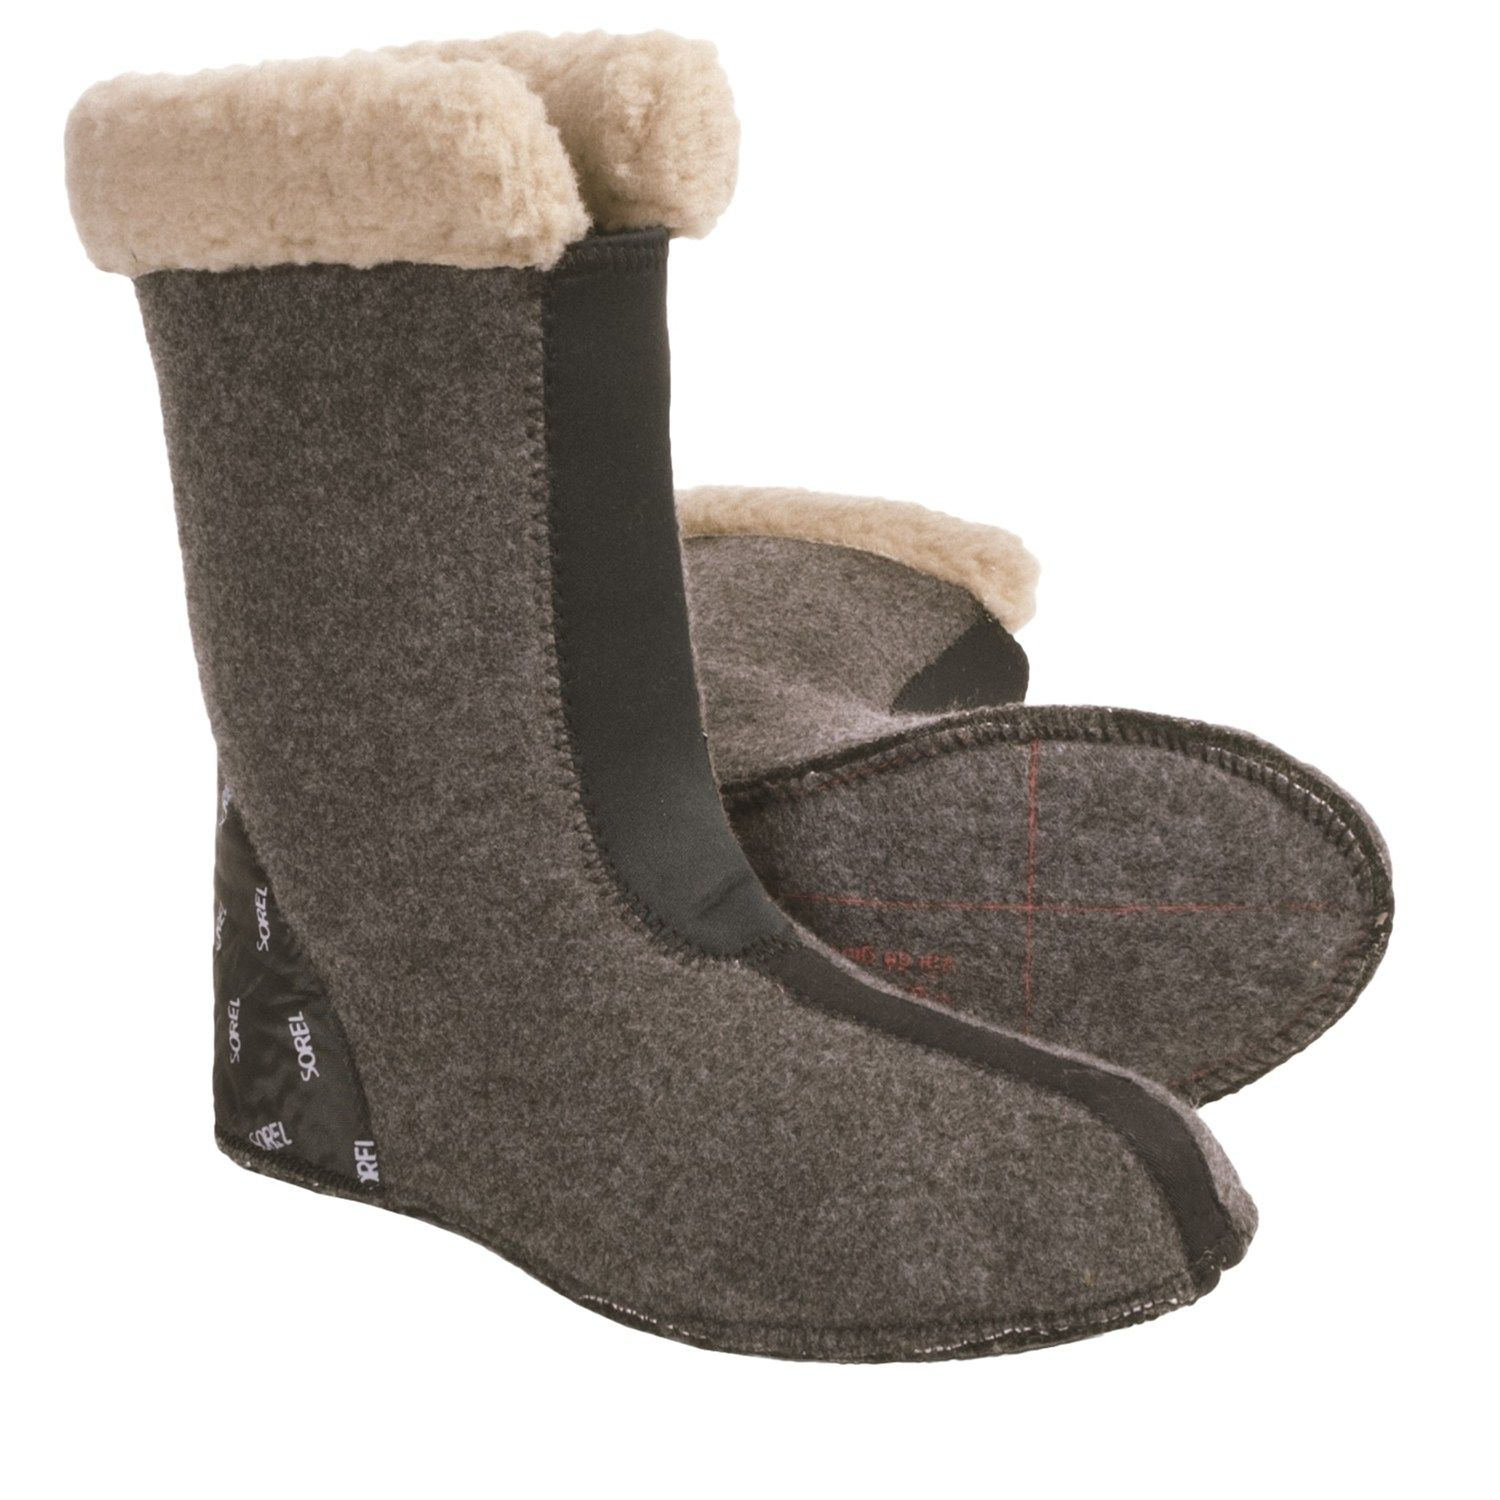 Sorel Boot Liners >> Sorel Caribou Thermoplus Boot Liners For Men Felted Feet